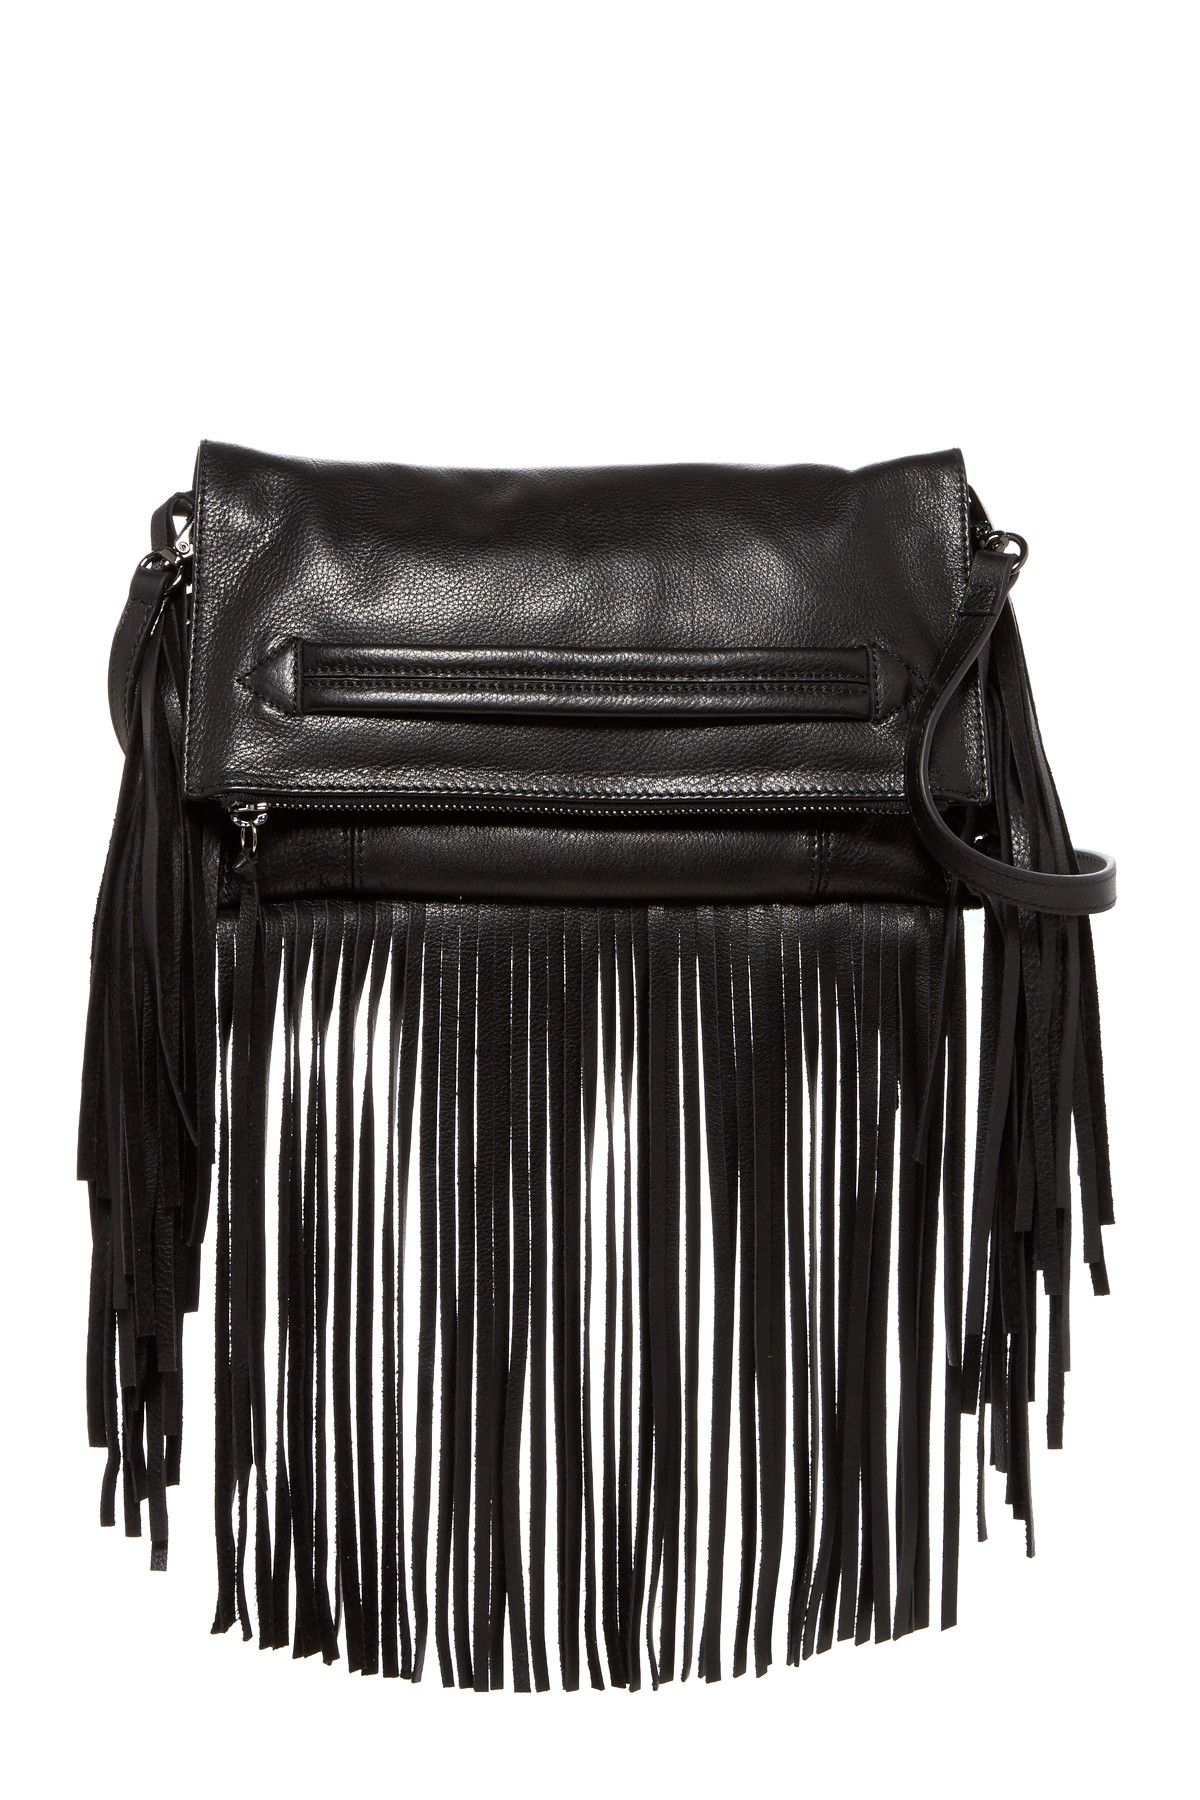 Carli Fringe Leather Clutch by Sorial on @nordstrom_rack 290.00/160.00